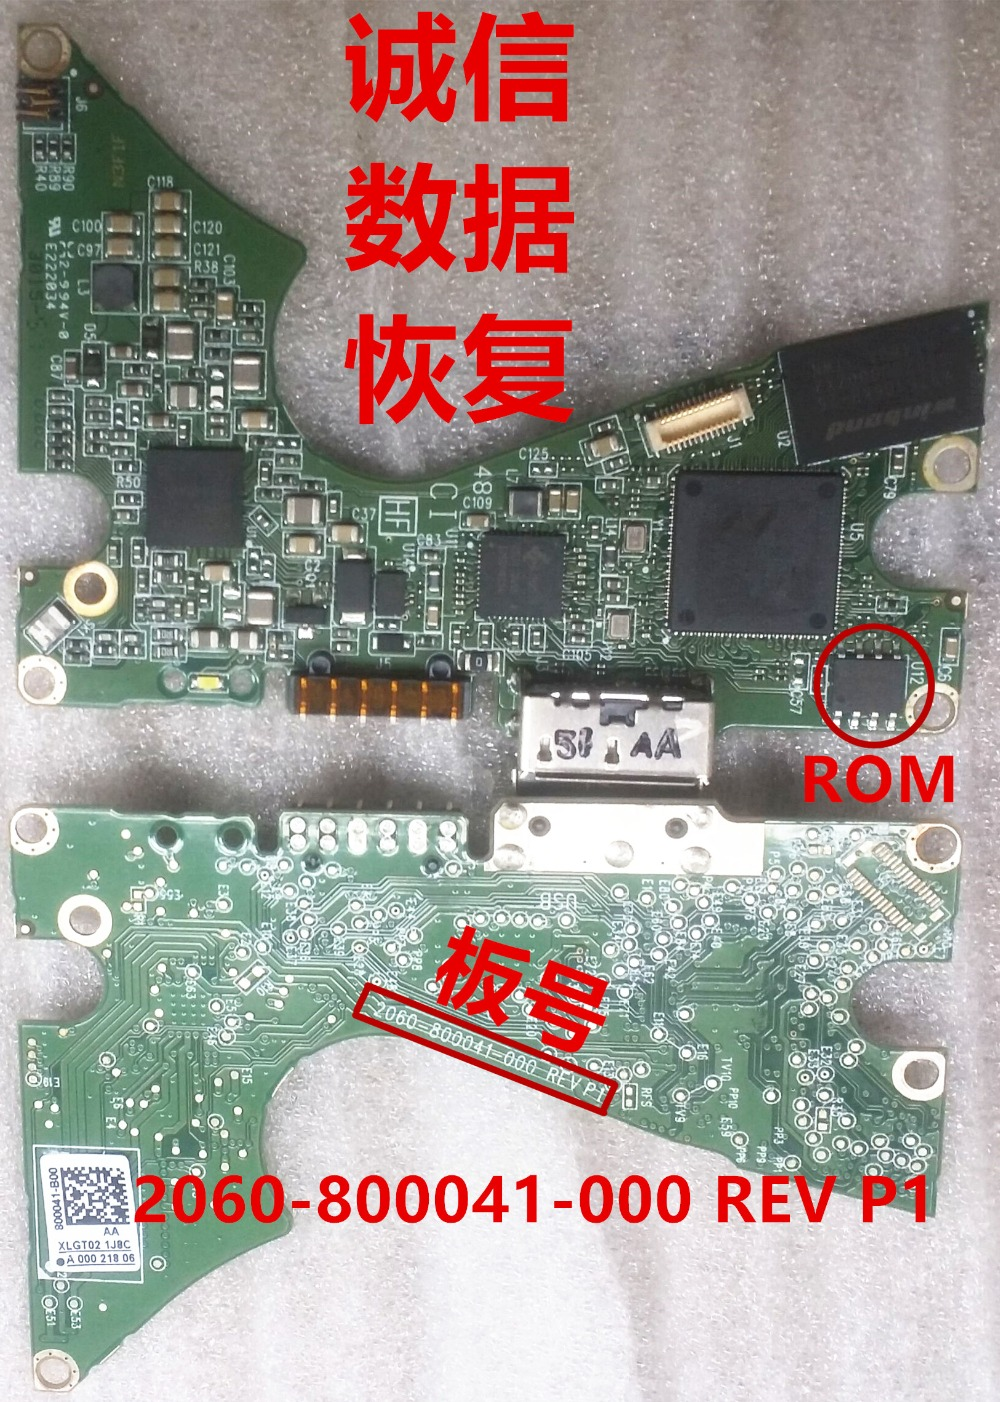 HDD PCB logic board printed circuit board 2060-800041-000 REV P1 for WD hard drive repair data recovery with USB 3.0 interface jb t 11106 2011